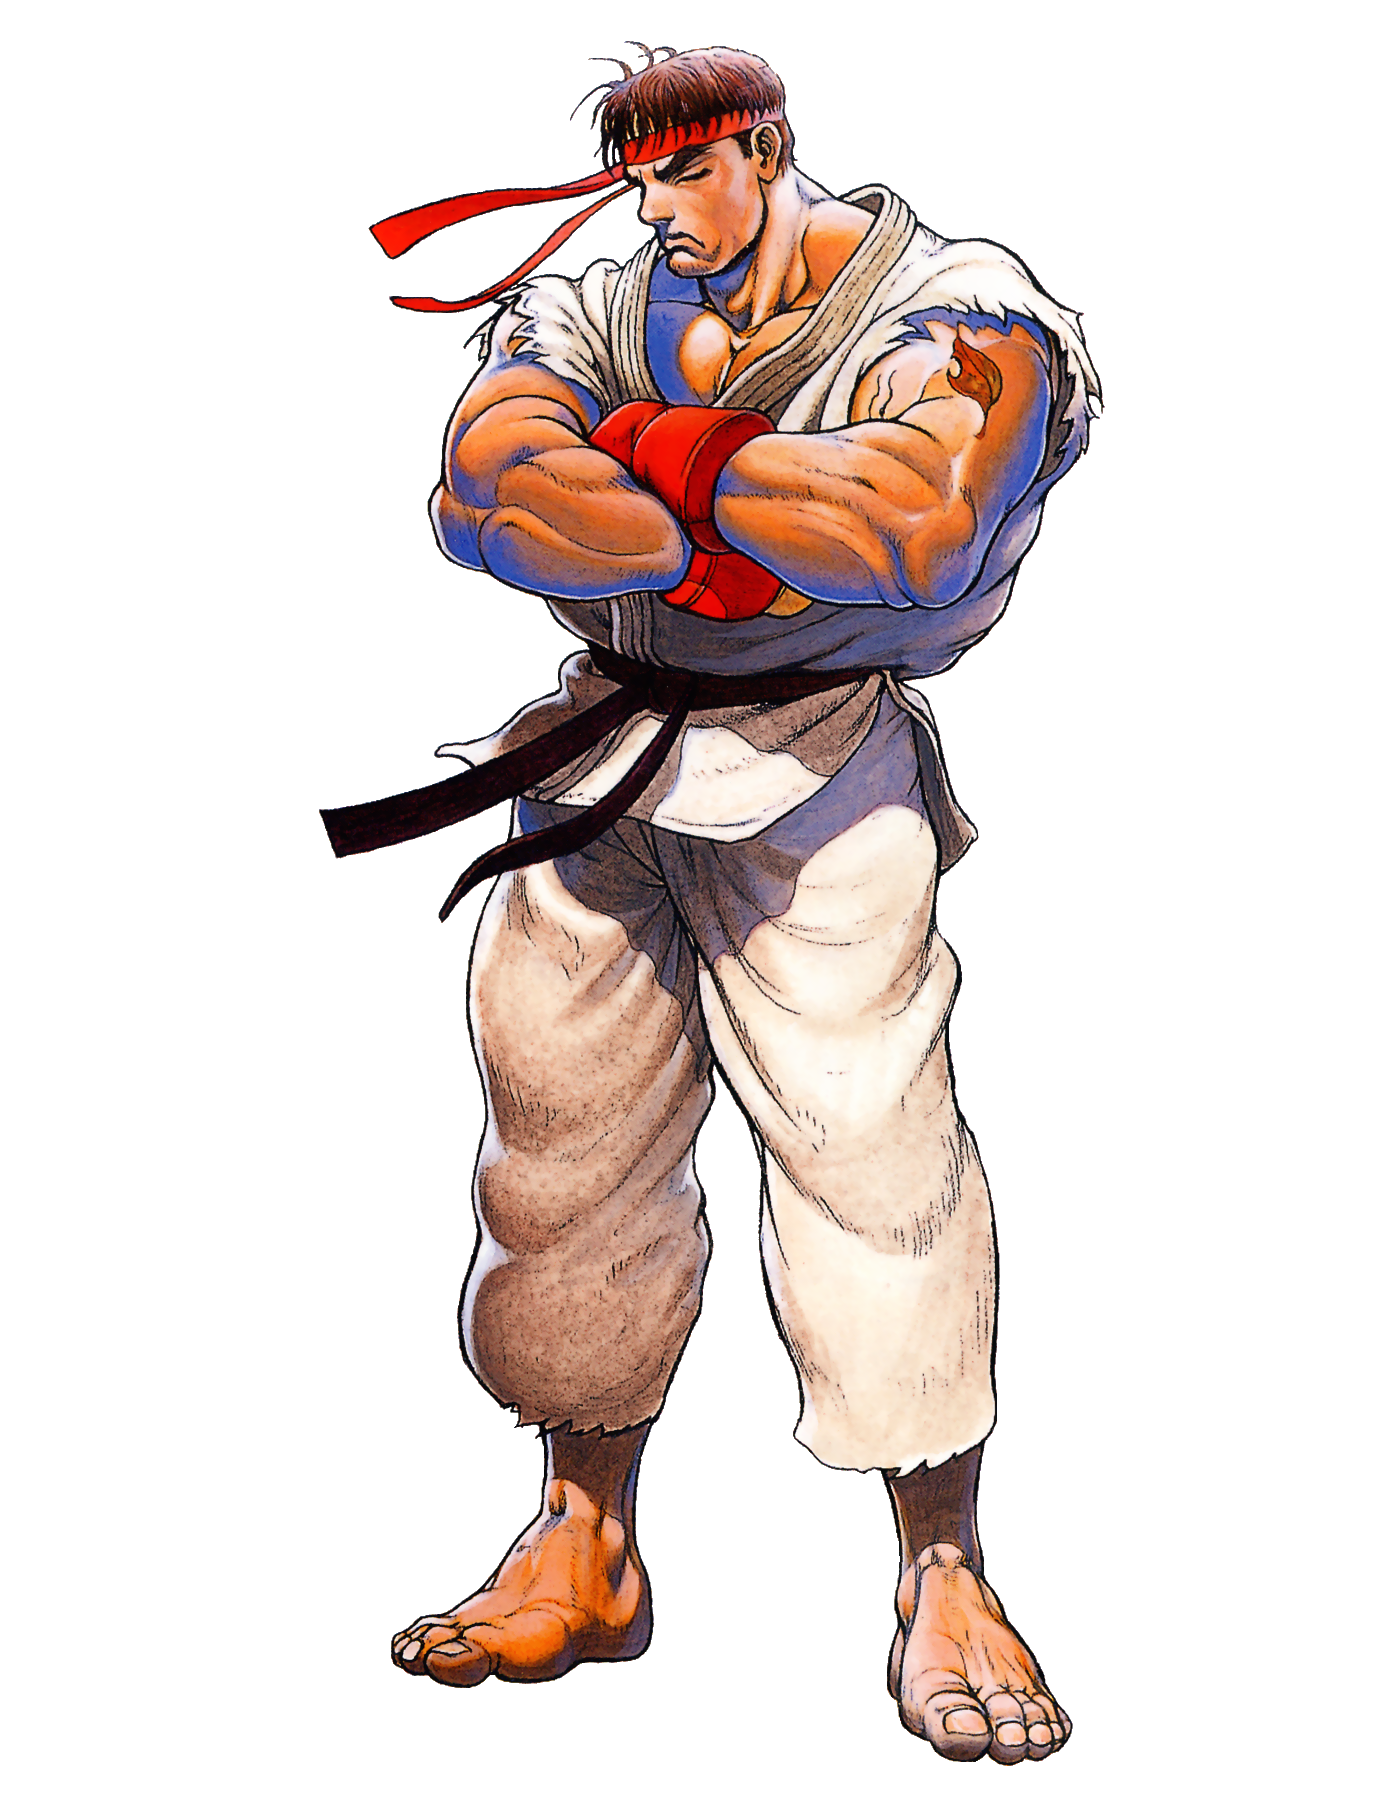 Ryu street fighter 2 png. Fatal fiction fanon wiki